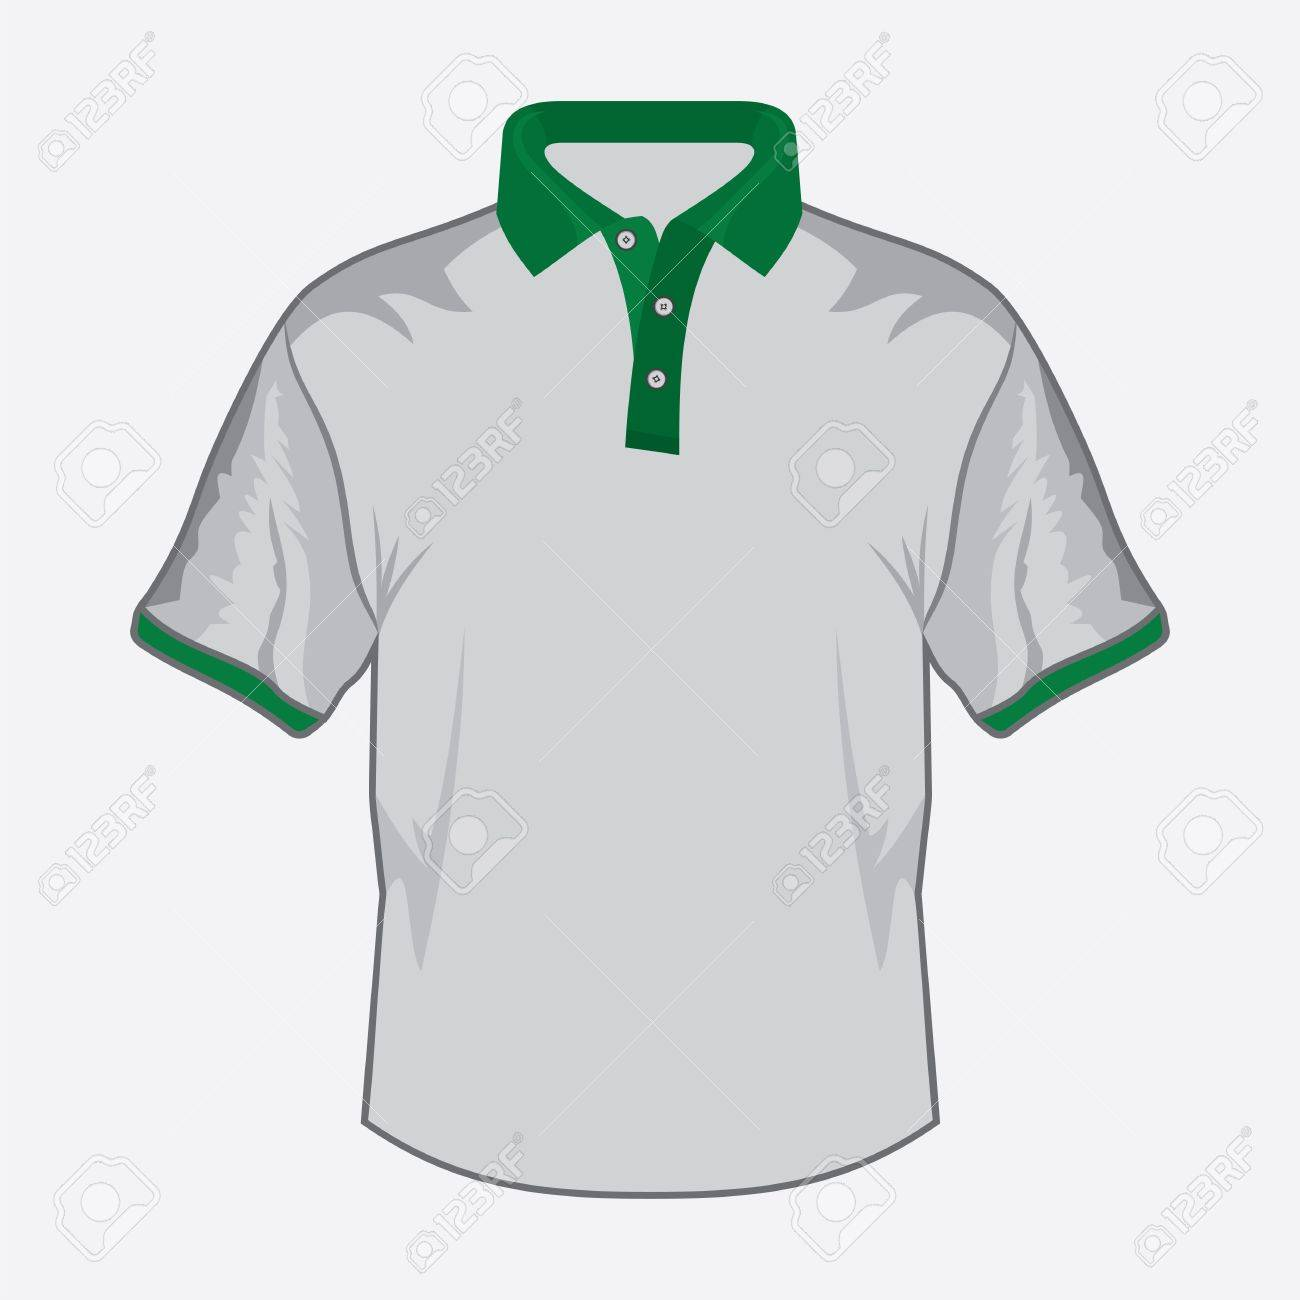 white polo shirt design green collar royalty cliparts vector white polo shirt design green collar